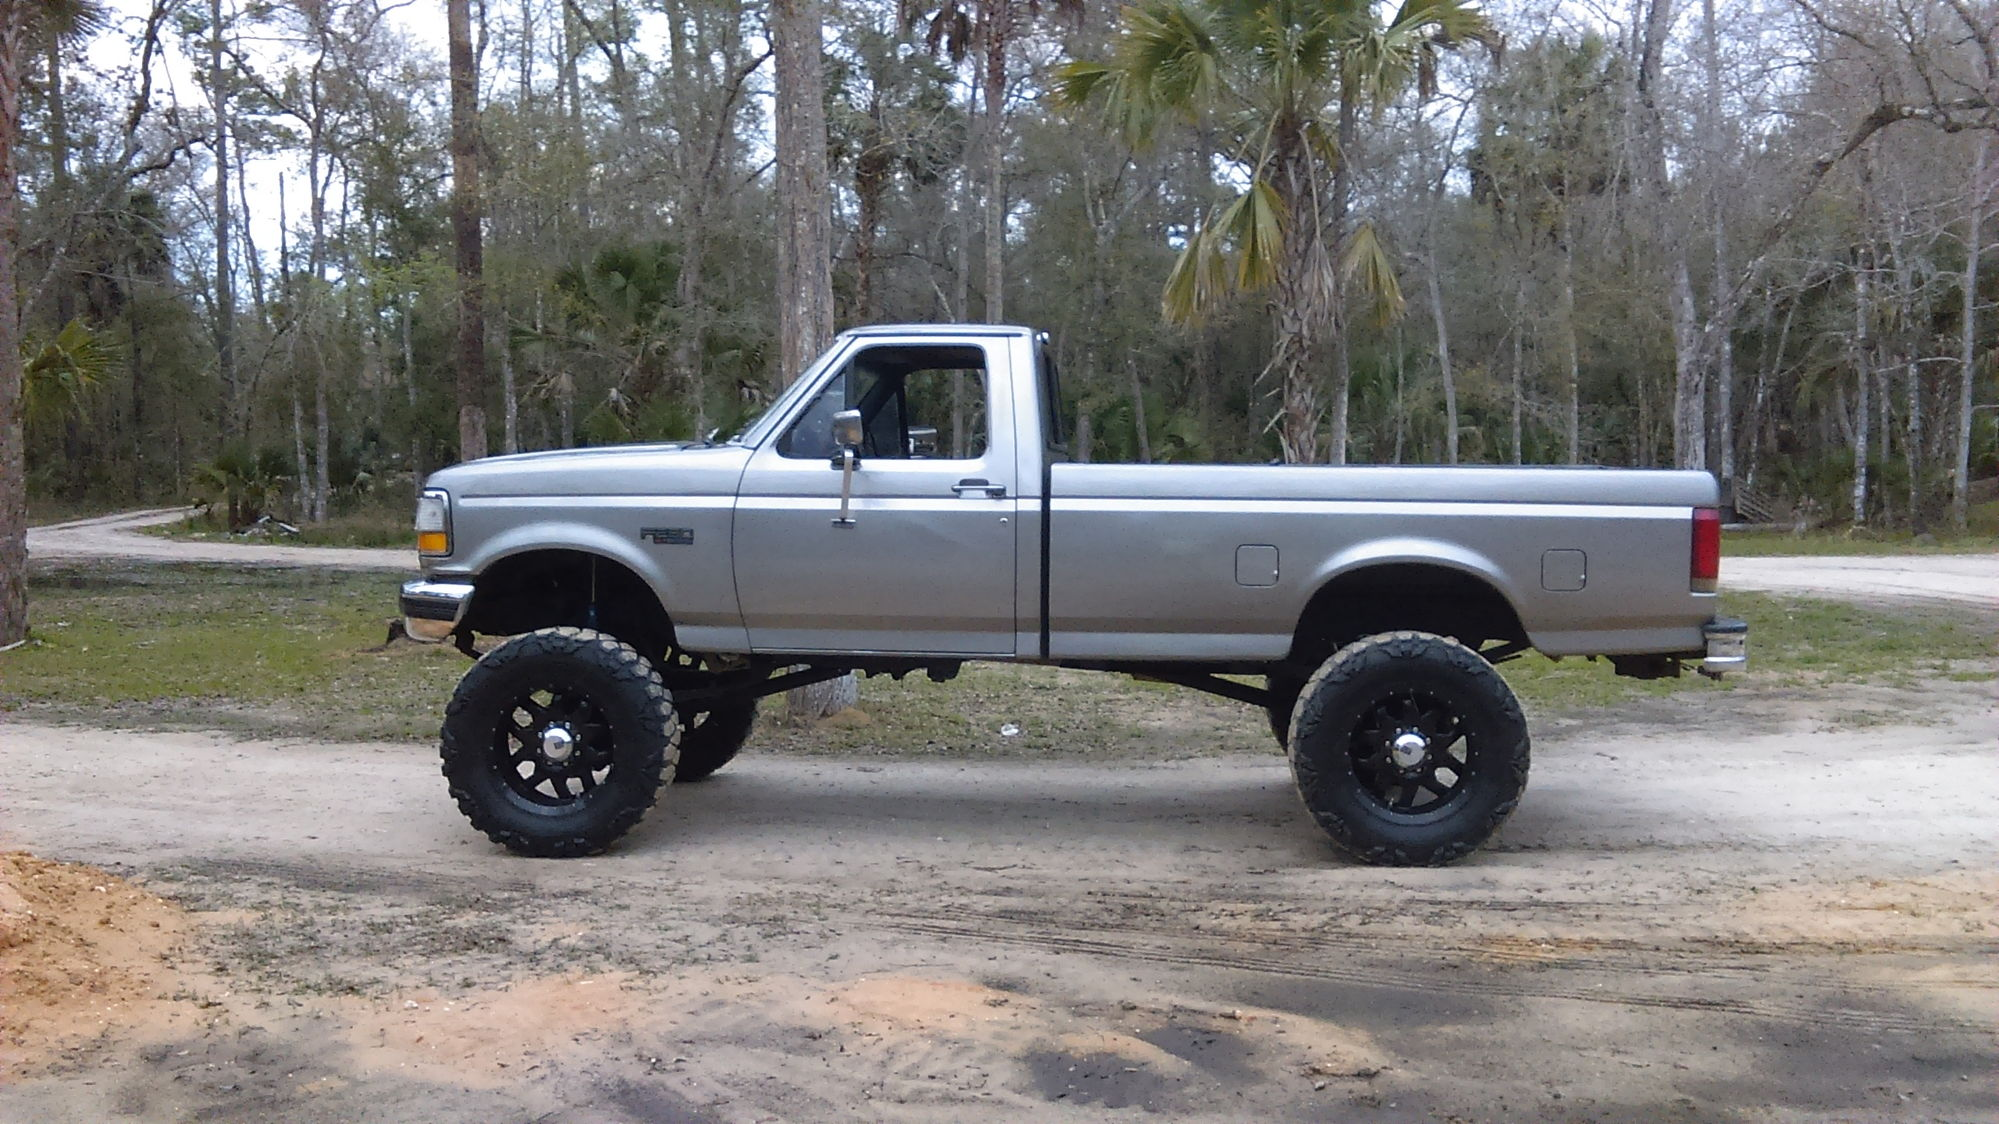 Ford F 250 Lifted >> 93 f250 6'' lift how big of a tire - Ford Truck Enthusiasts Forums